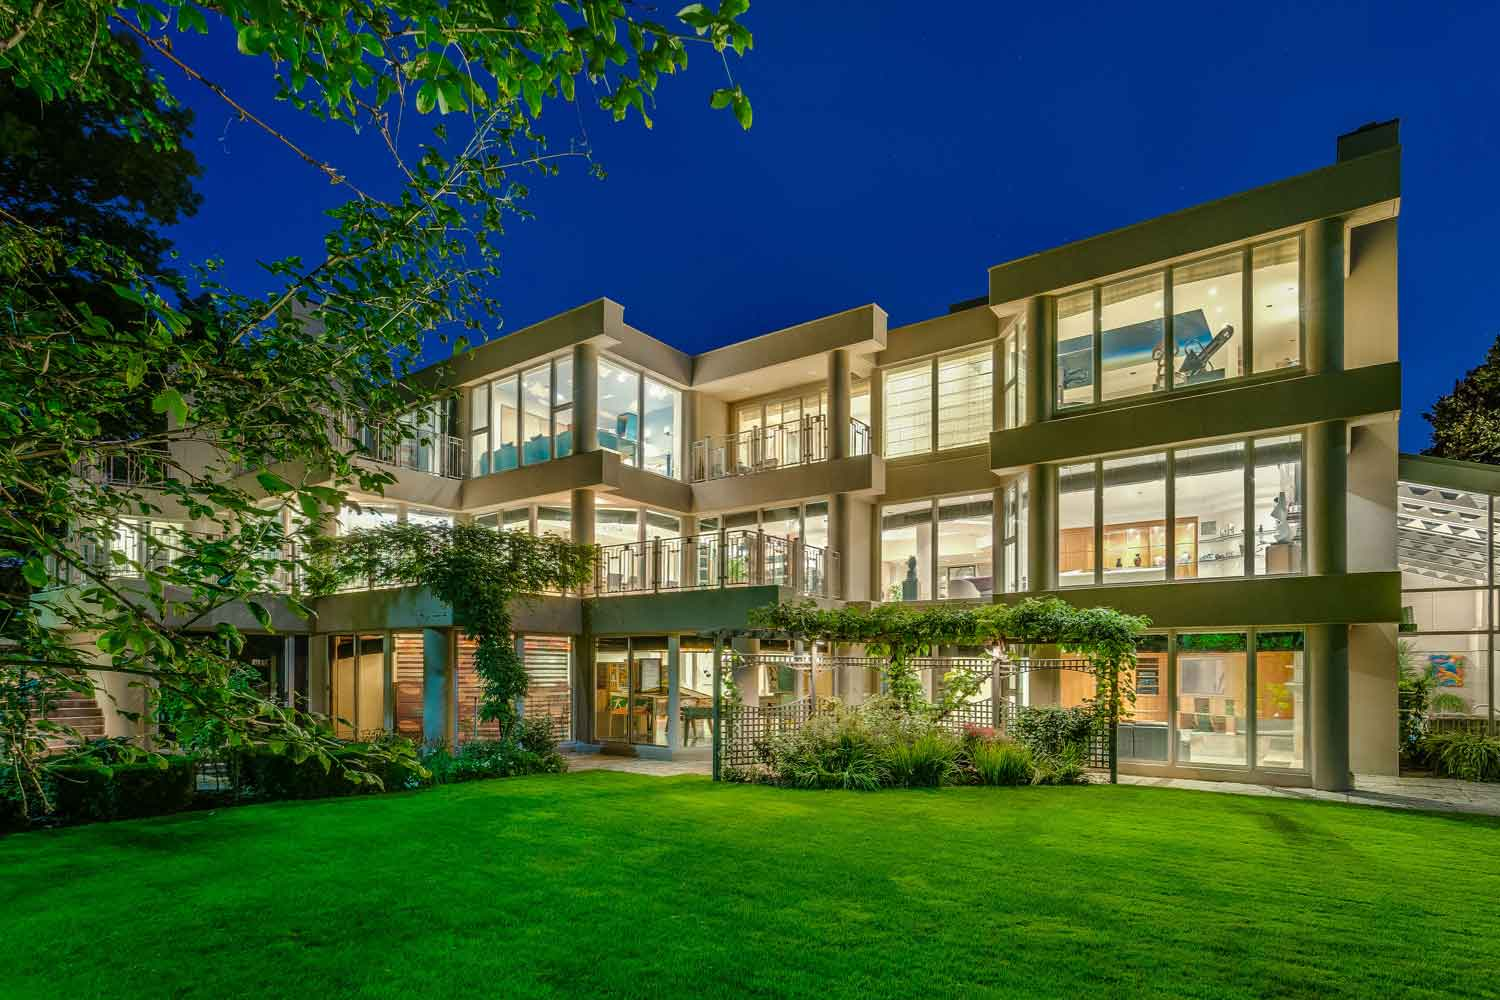 <b>Toronto, Canada</b><br/><i>7 Bedrooms, 15,000 sq. ft.</i><br/>Seven-bedroom home set on lush and private ravine setting